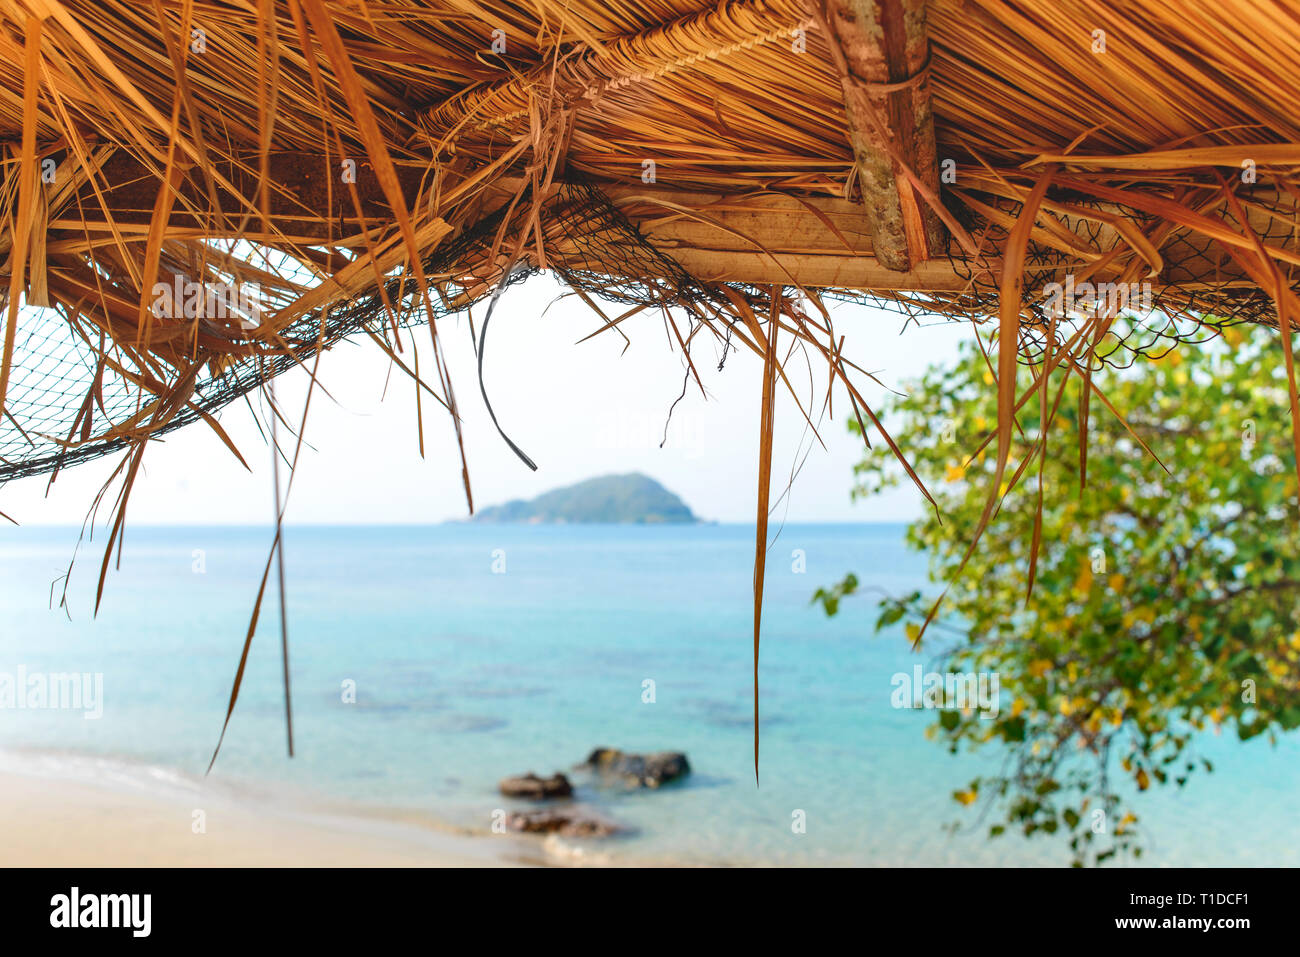 Tropical sand beach sea shore view through the straw umbrella roof. Travel vacation summer. - Stock Image